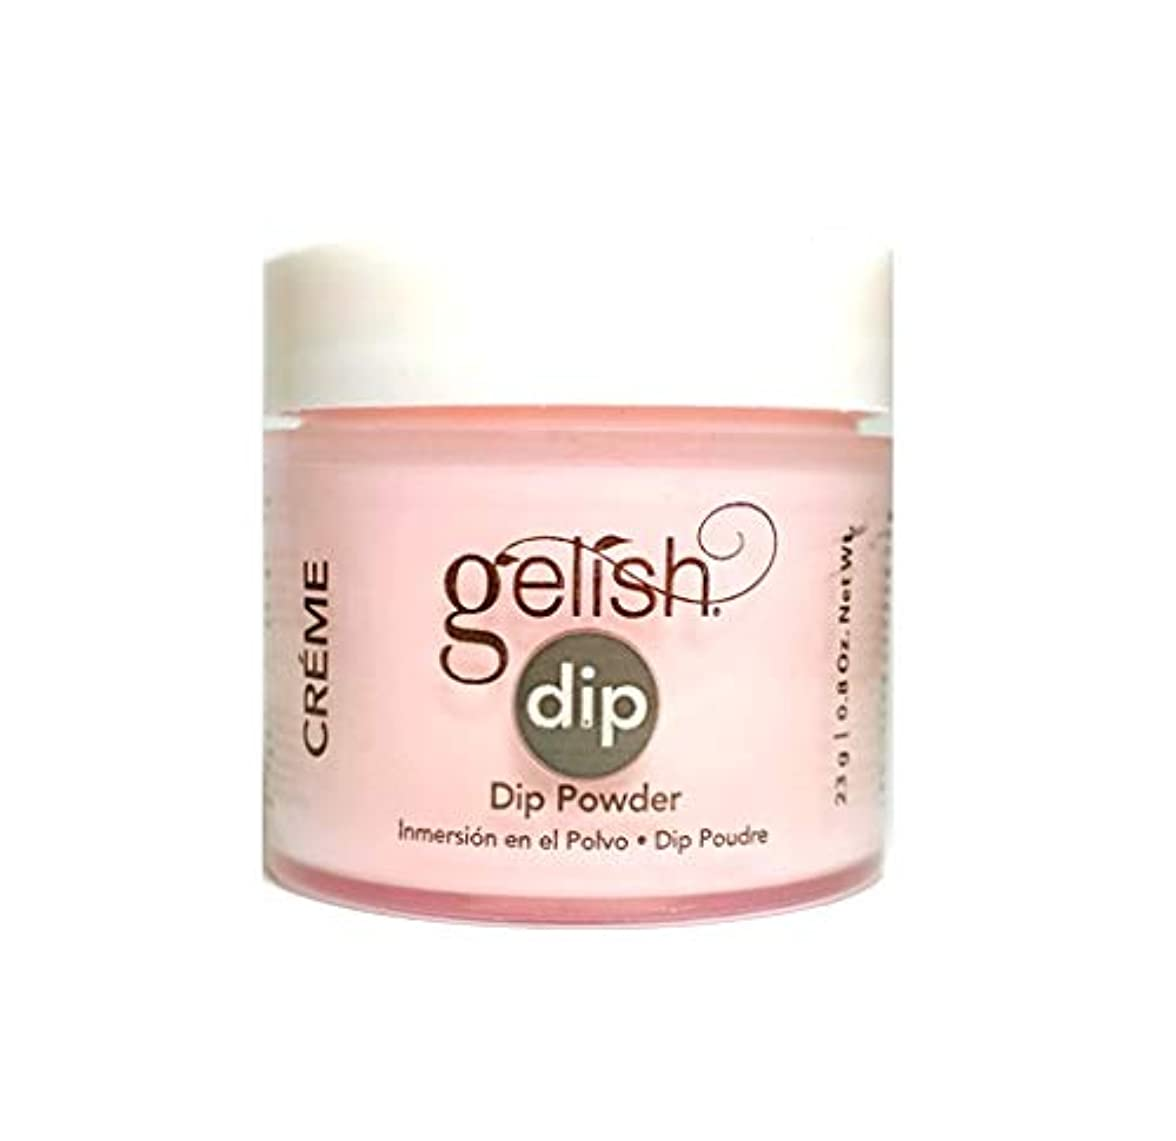 Harmony Gelish - Dip Powder - All About The Pout - 23g / 0.8oz